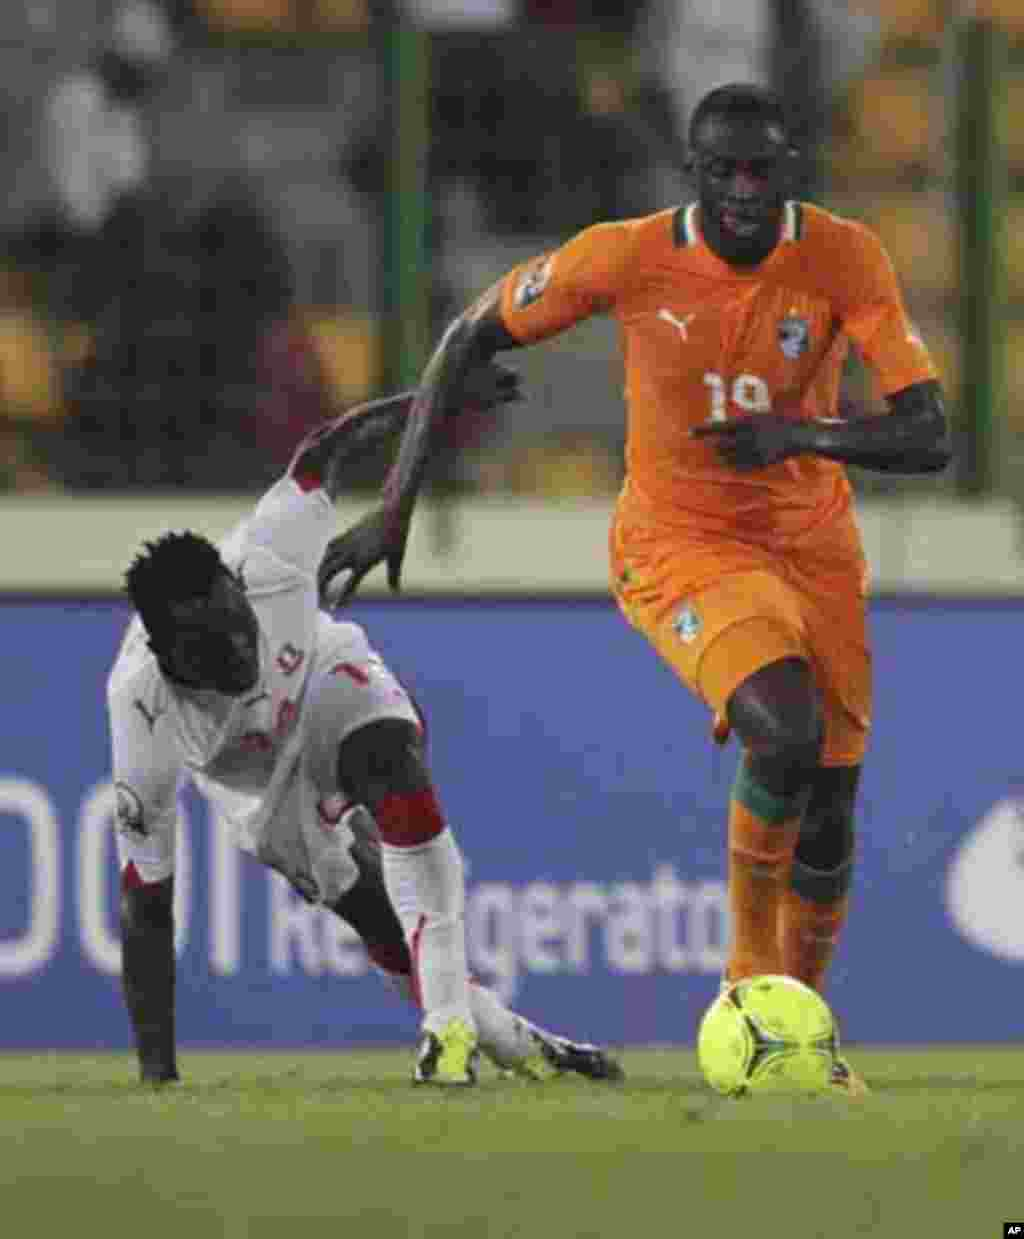 Yaya Toure (R) of Ivory Coast fights for the ball with Ben Konate of Equatorial Guinea during their quarter-final match at the African Nations Cup soccer tournament in Malabo February 4, 2012.